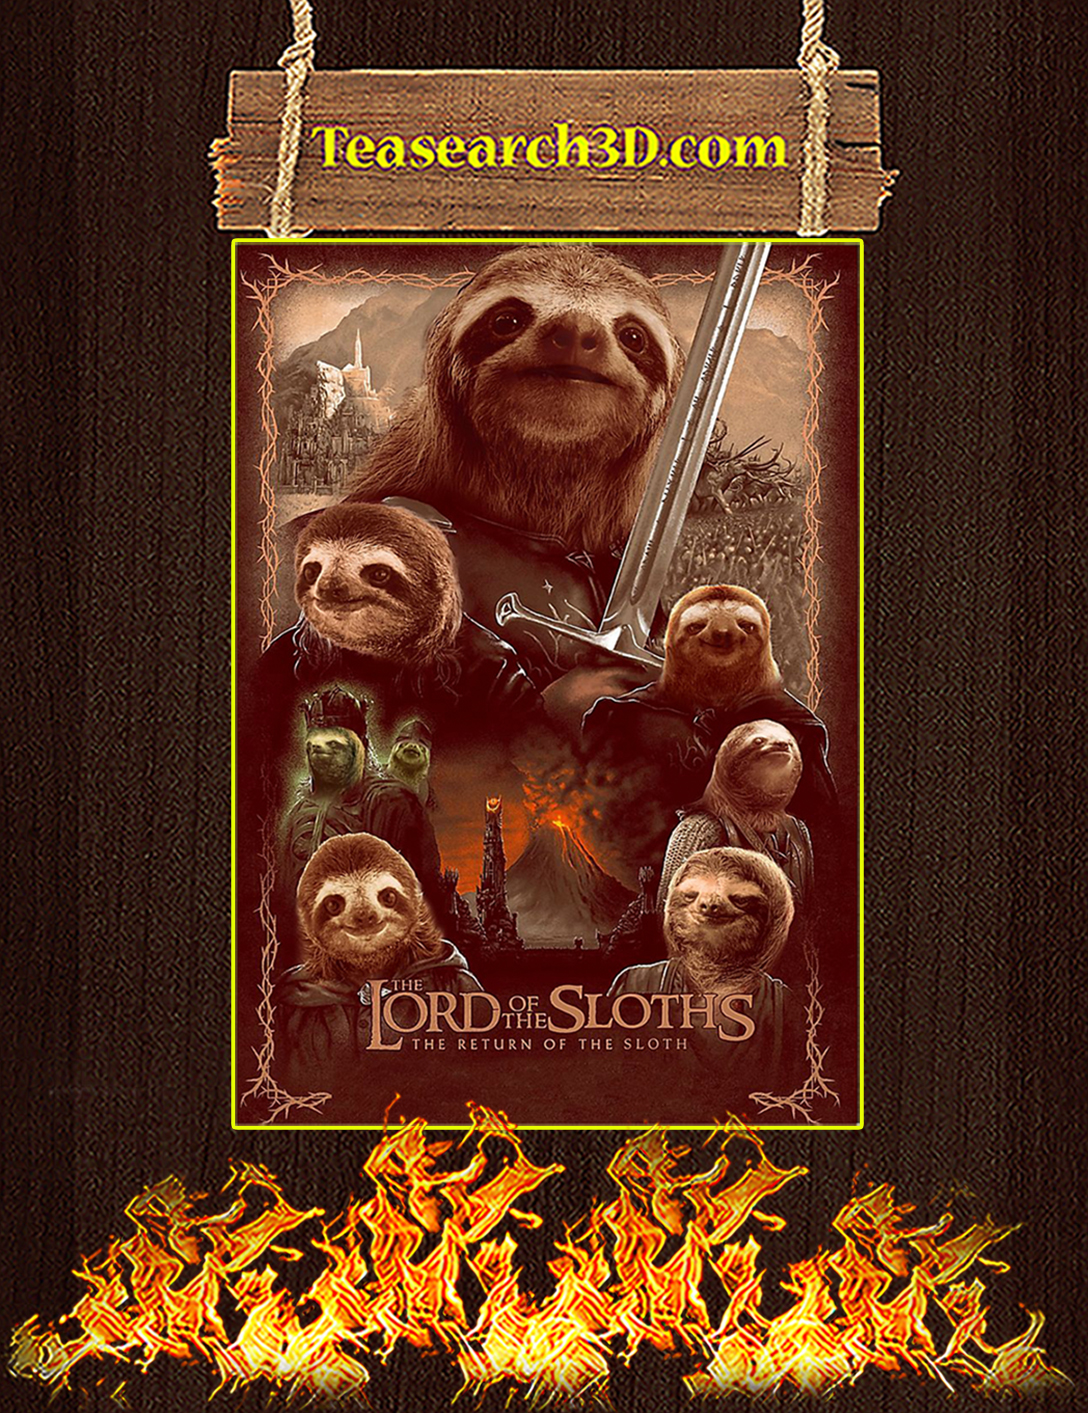 Lord of the sloths parody poster A2